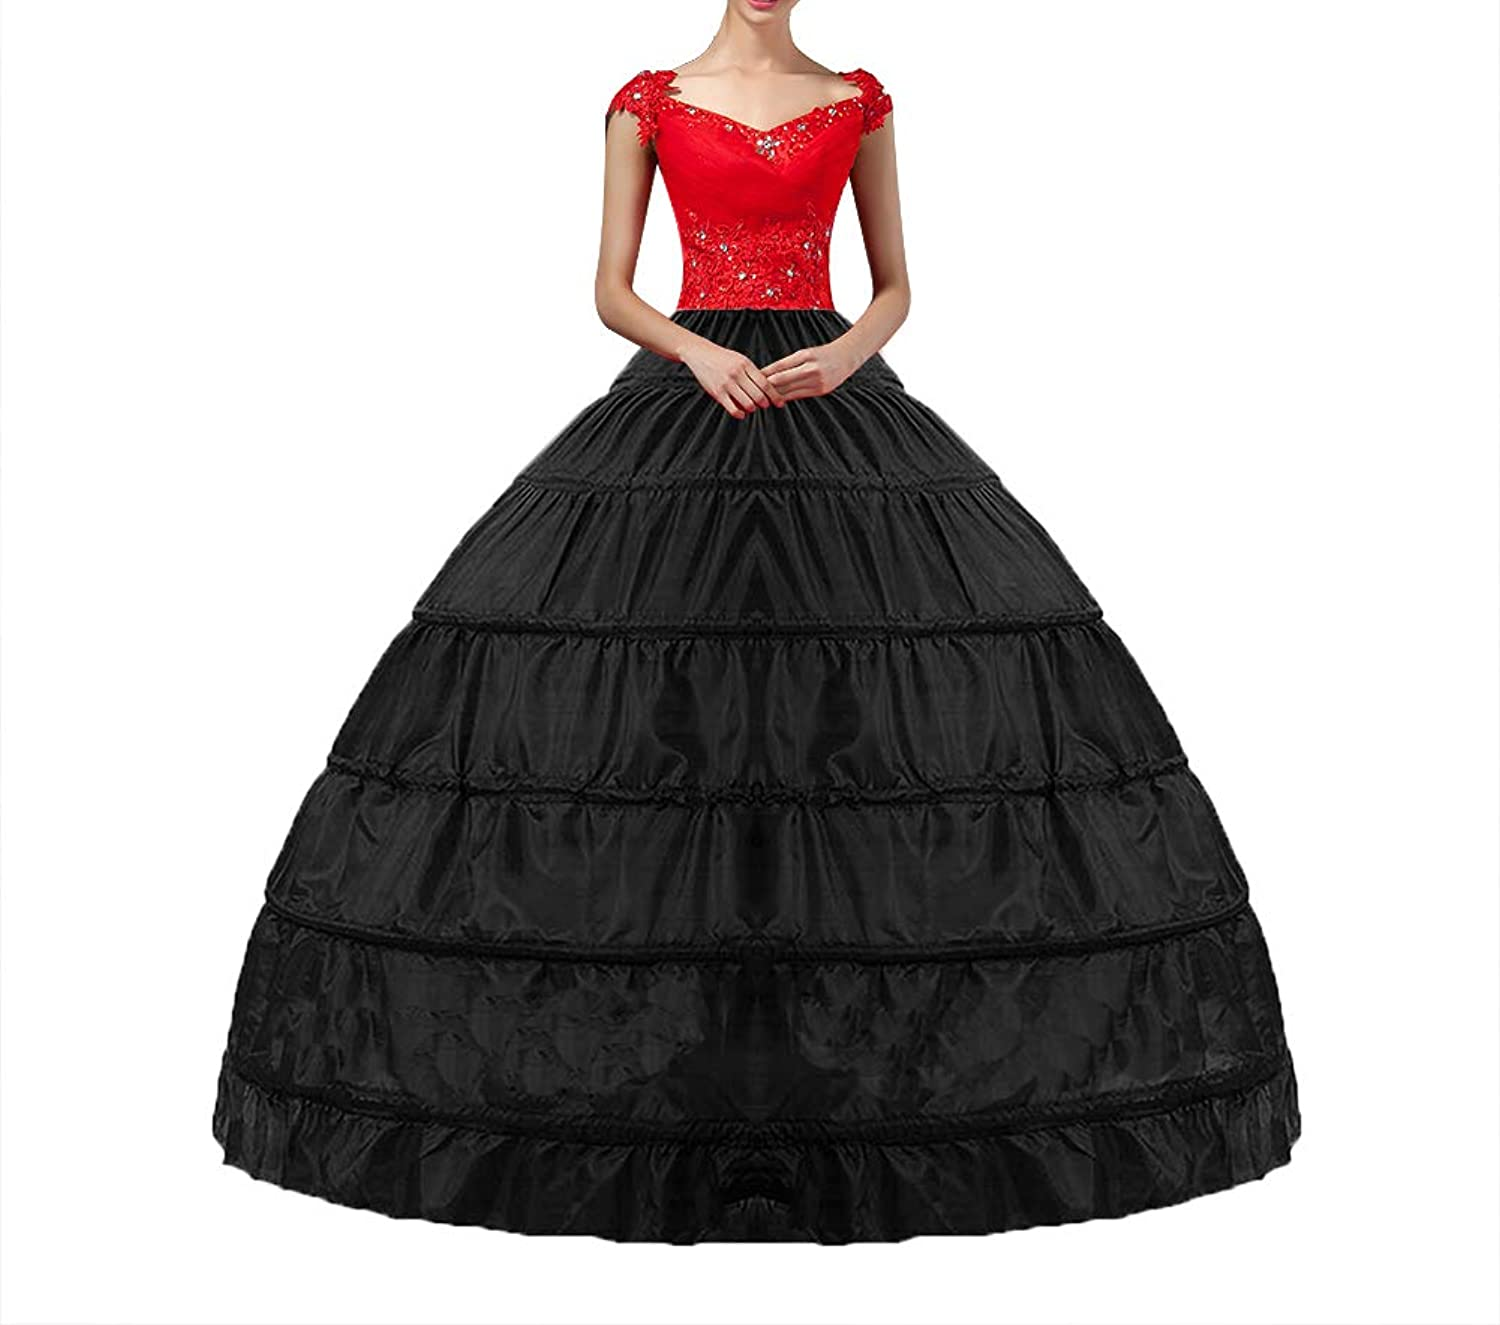 a192323199714 ♥Crinoline Petticoat's size-Skirt full length is about 100 ± 5cm. The  maximum circle diameter is 124cm / 49in. Elastic Crinoline underskirt waist  is ...